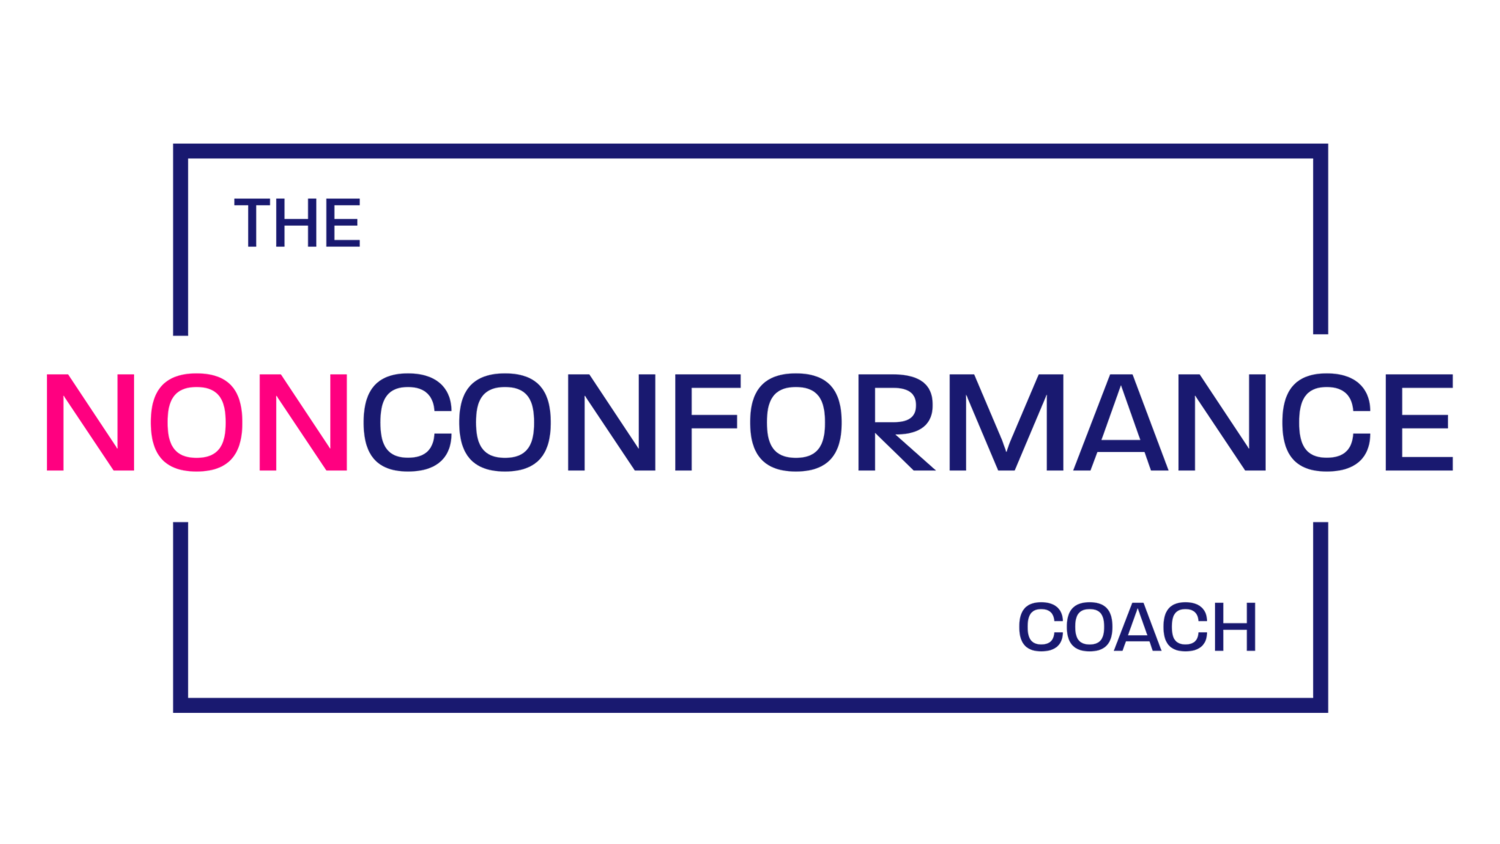 The Nonconformance Coach